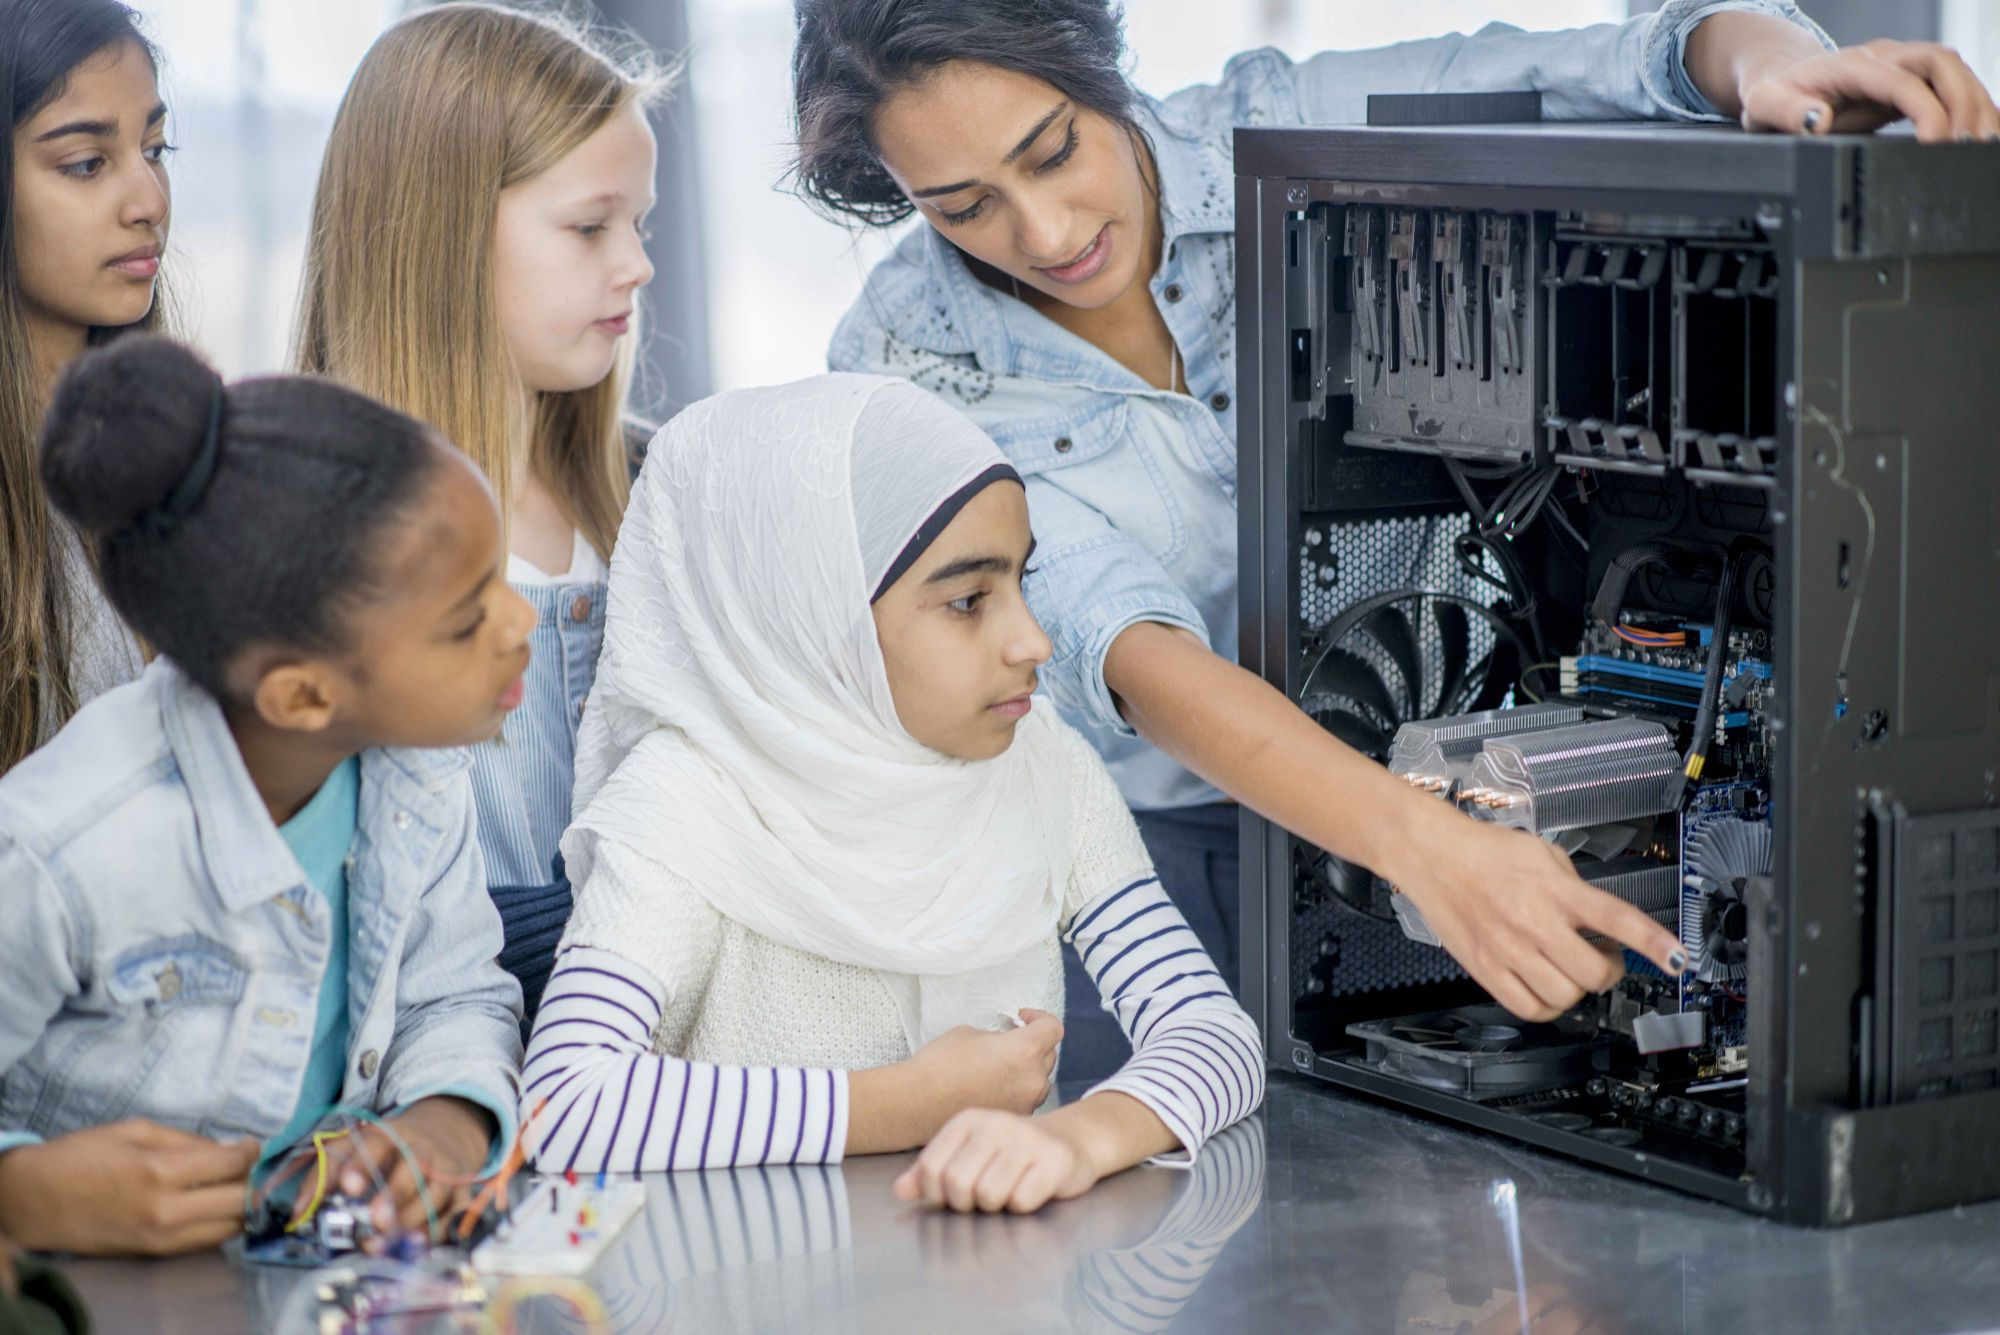 A group of elementary school children and their teacher and indoors in their classroom. The teacher has opened a desktop computer to view the inside components. She is pointing to certain parts and explaining what they do.